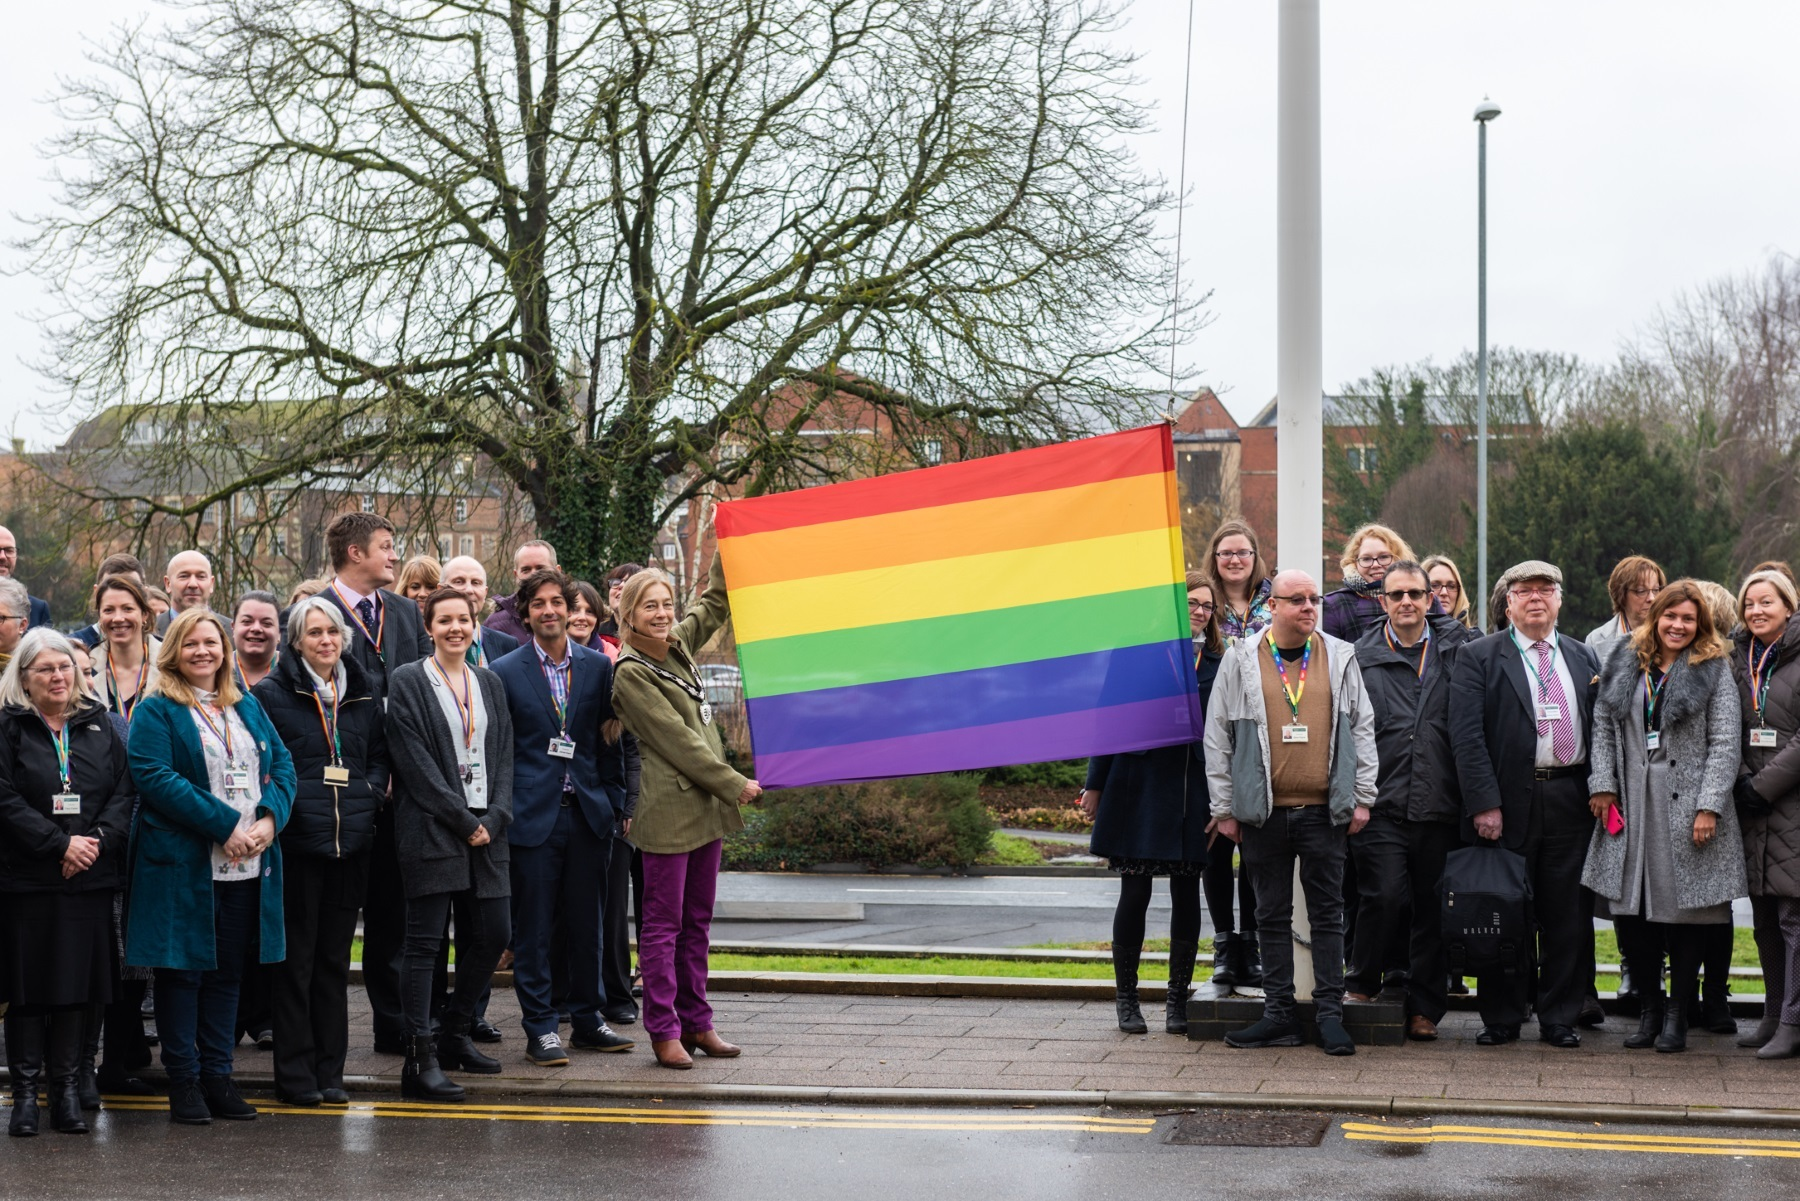 Wiltshire Council raises the flag to mark the start of LGBT History Month outside County Hall